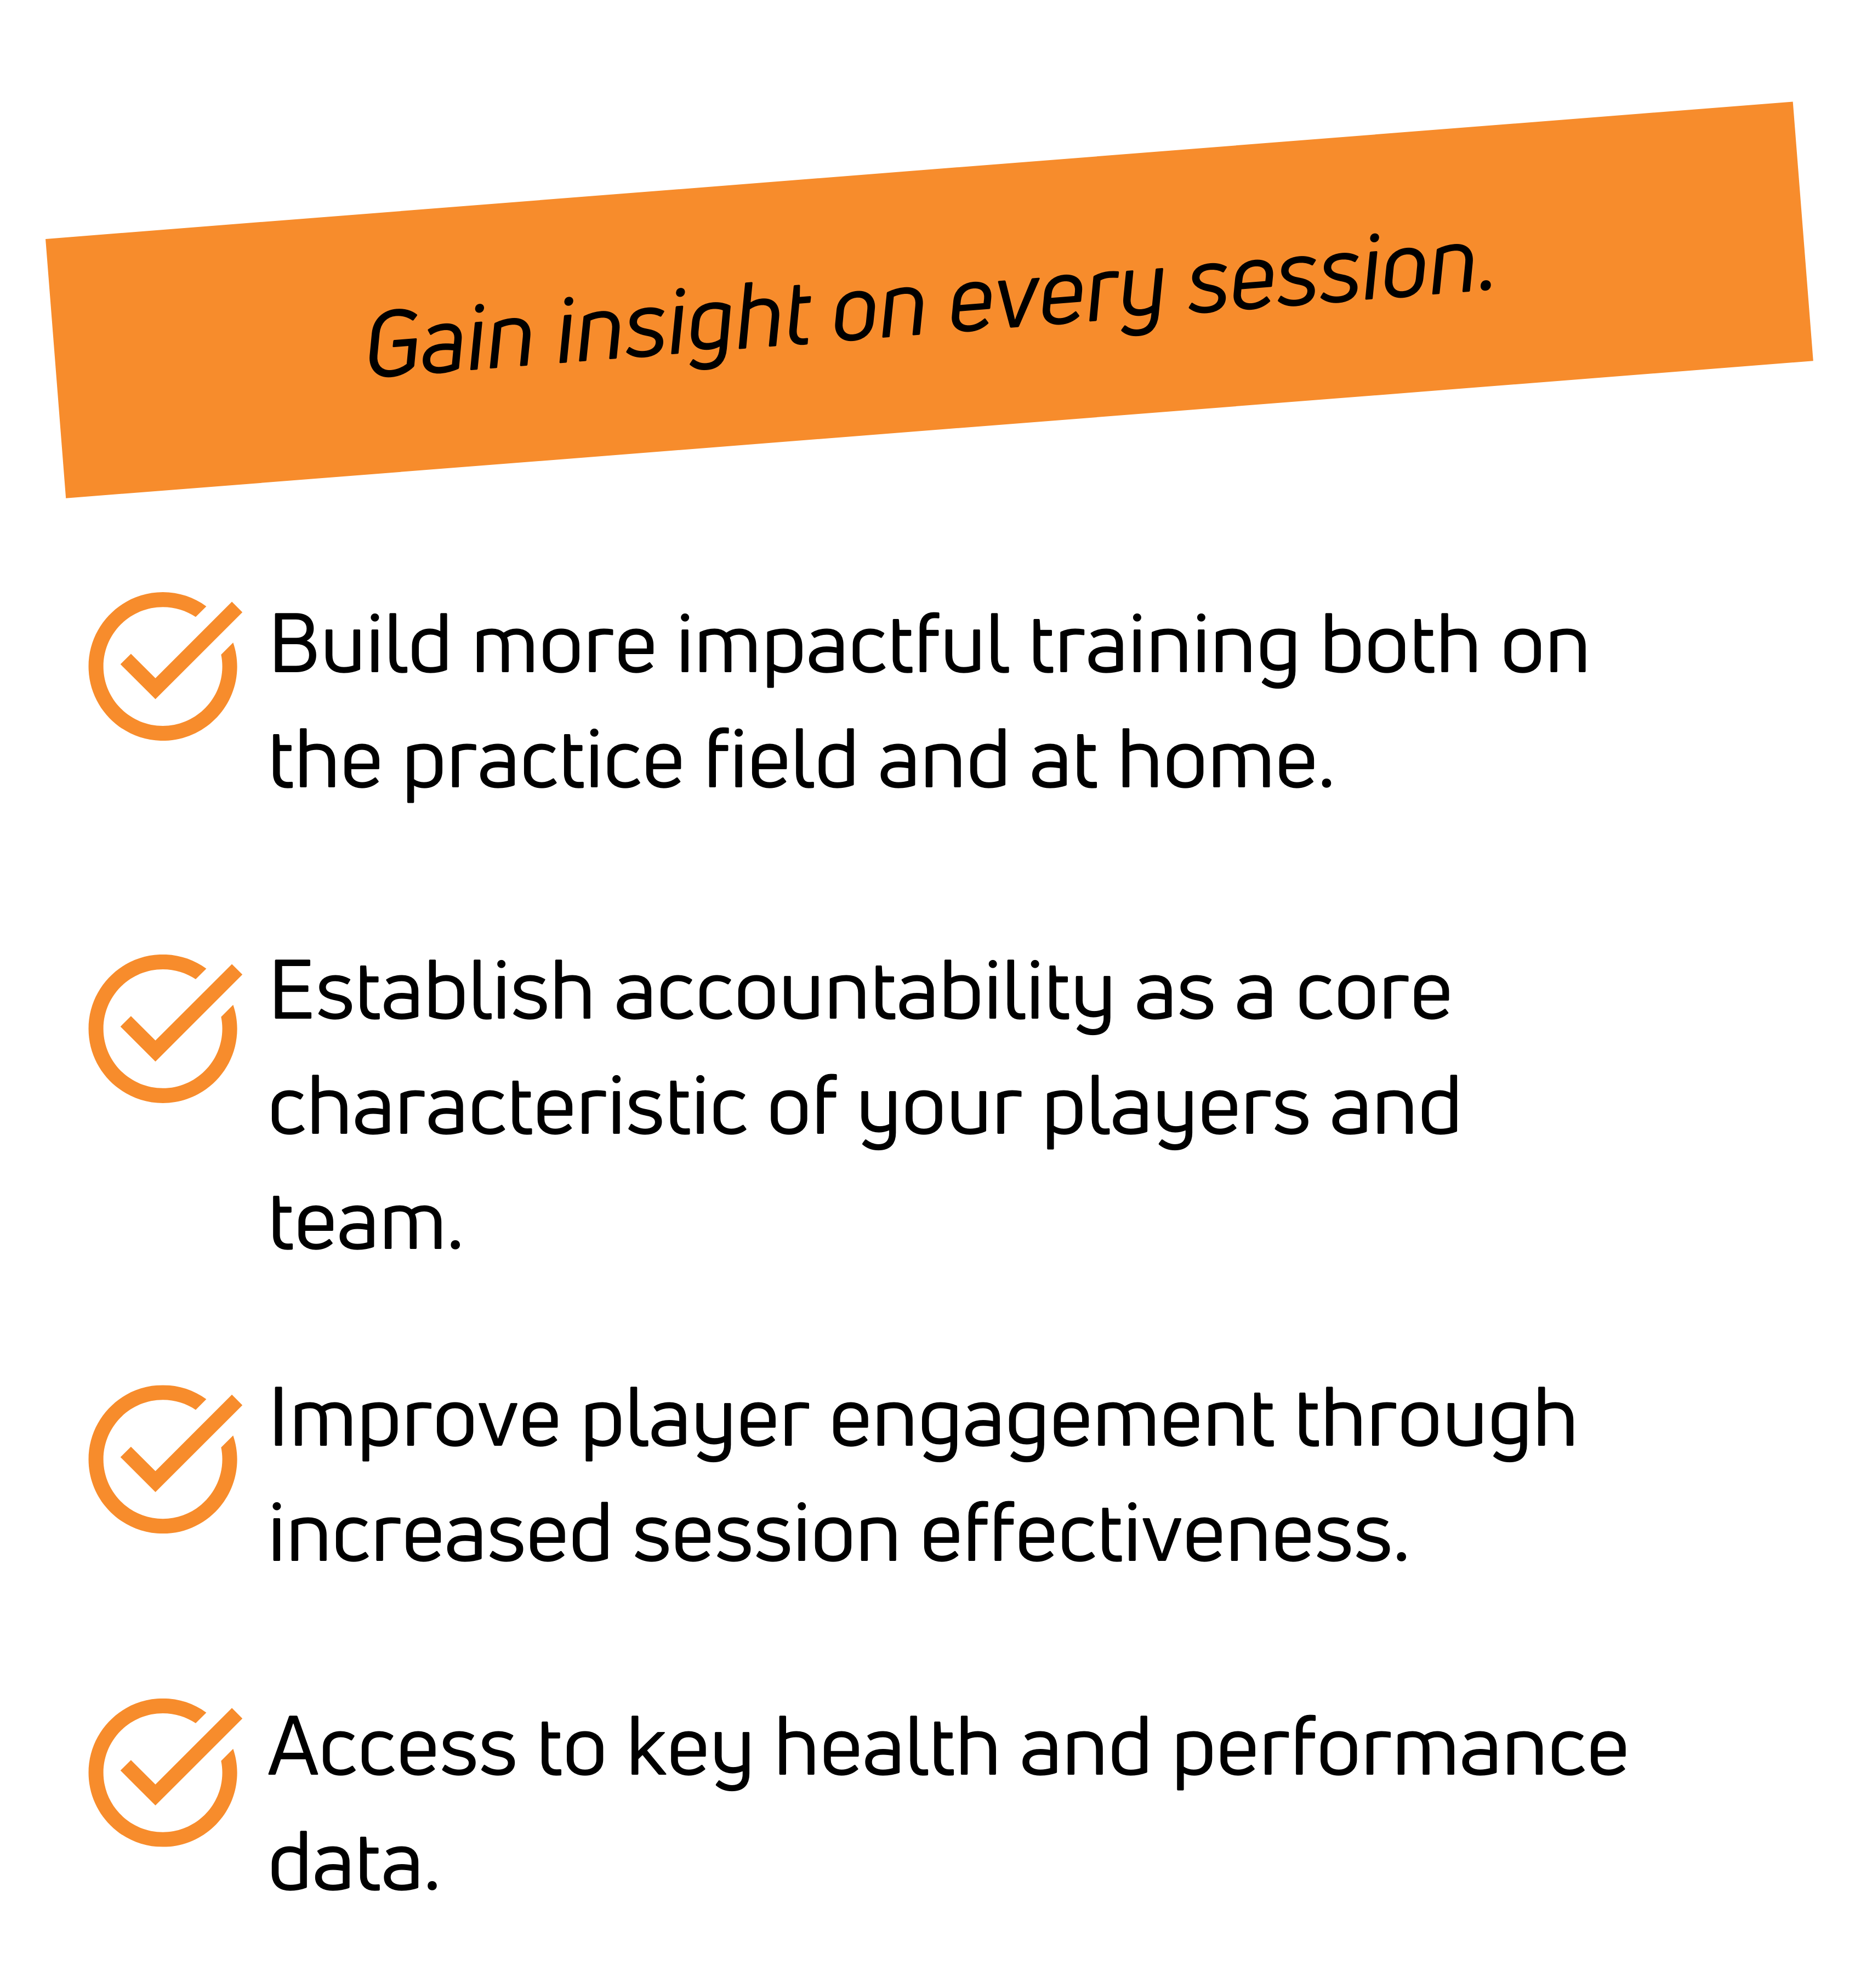 Build more impactful training both on the practice field and at home.